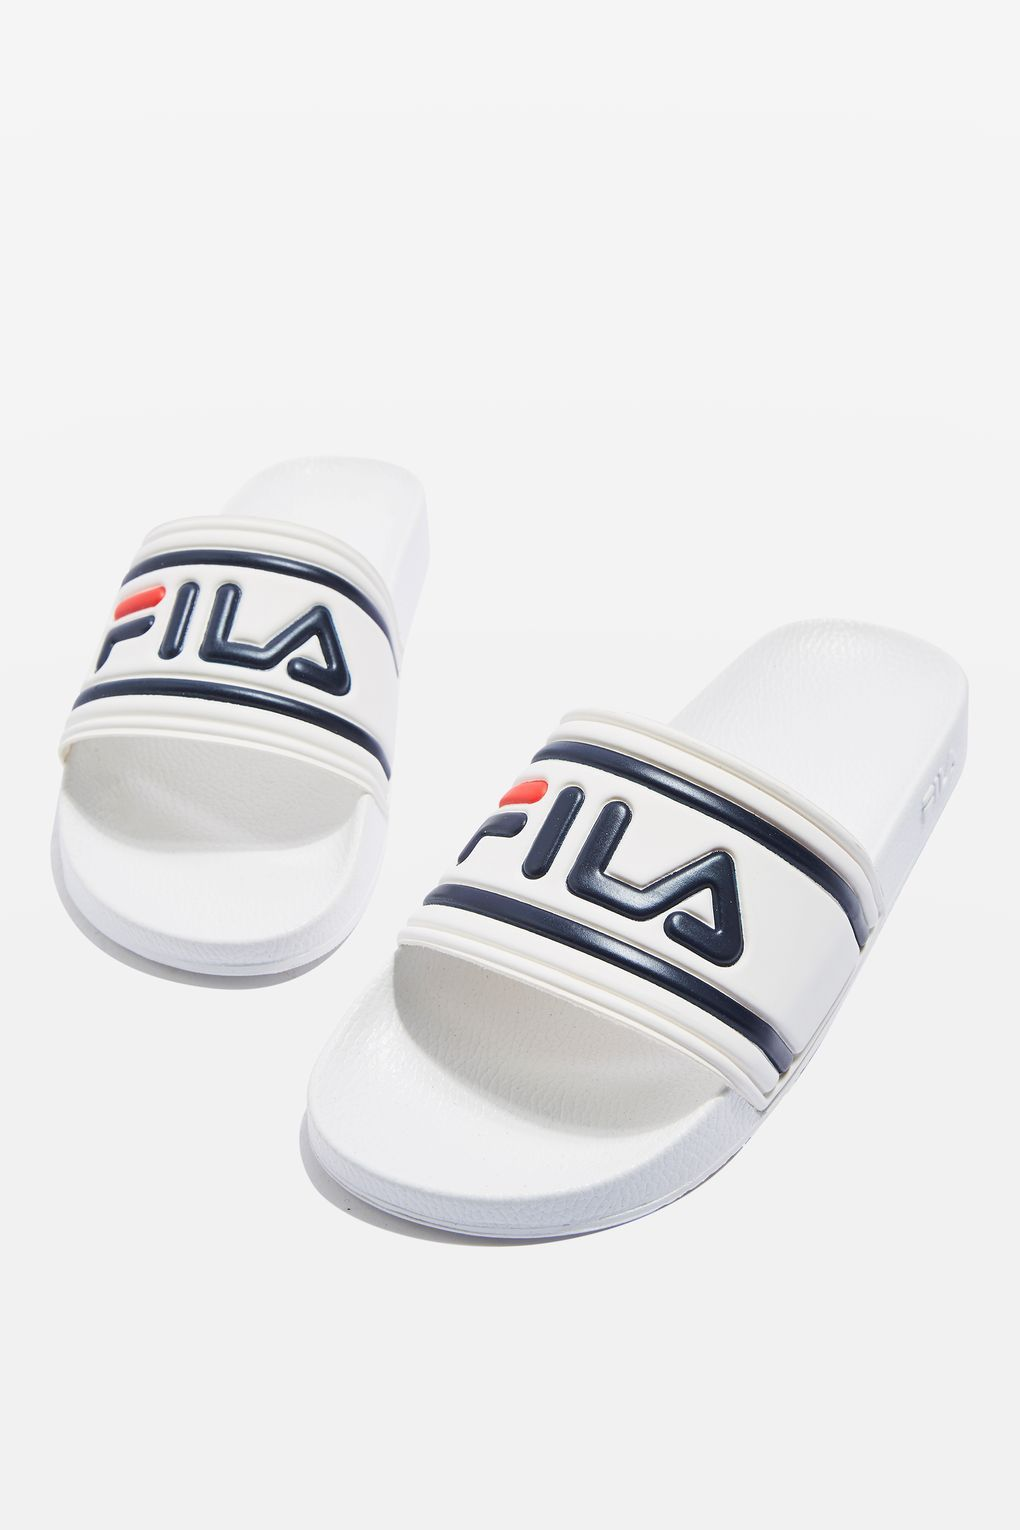 b1009add4f Morro Bay Slides by Fila - New In Shoes - New In - Topshop